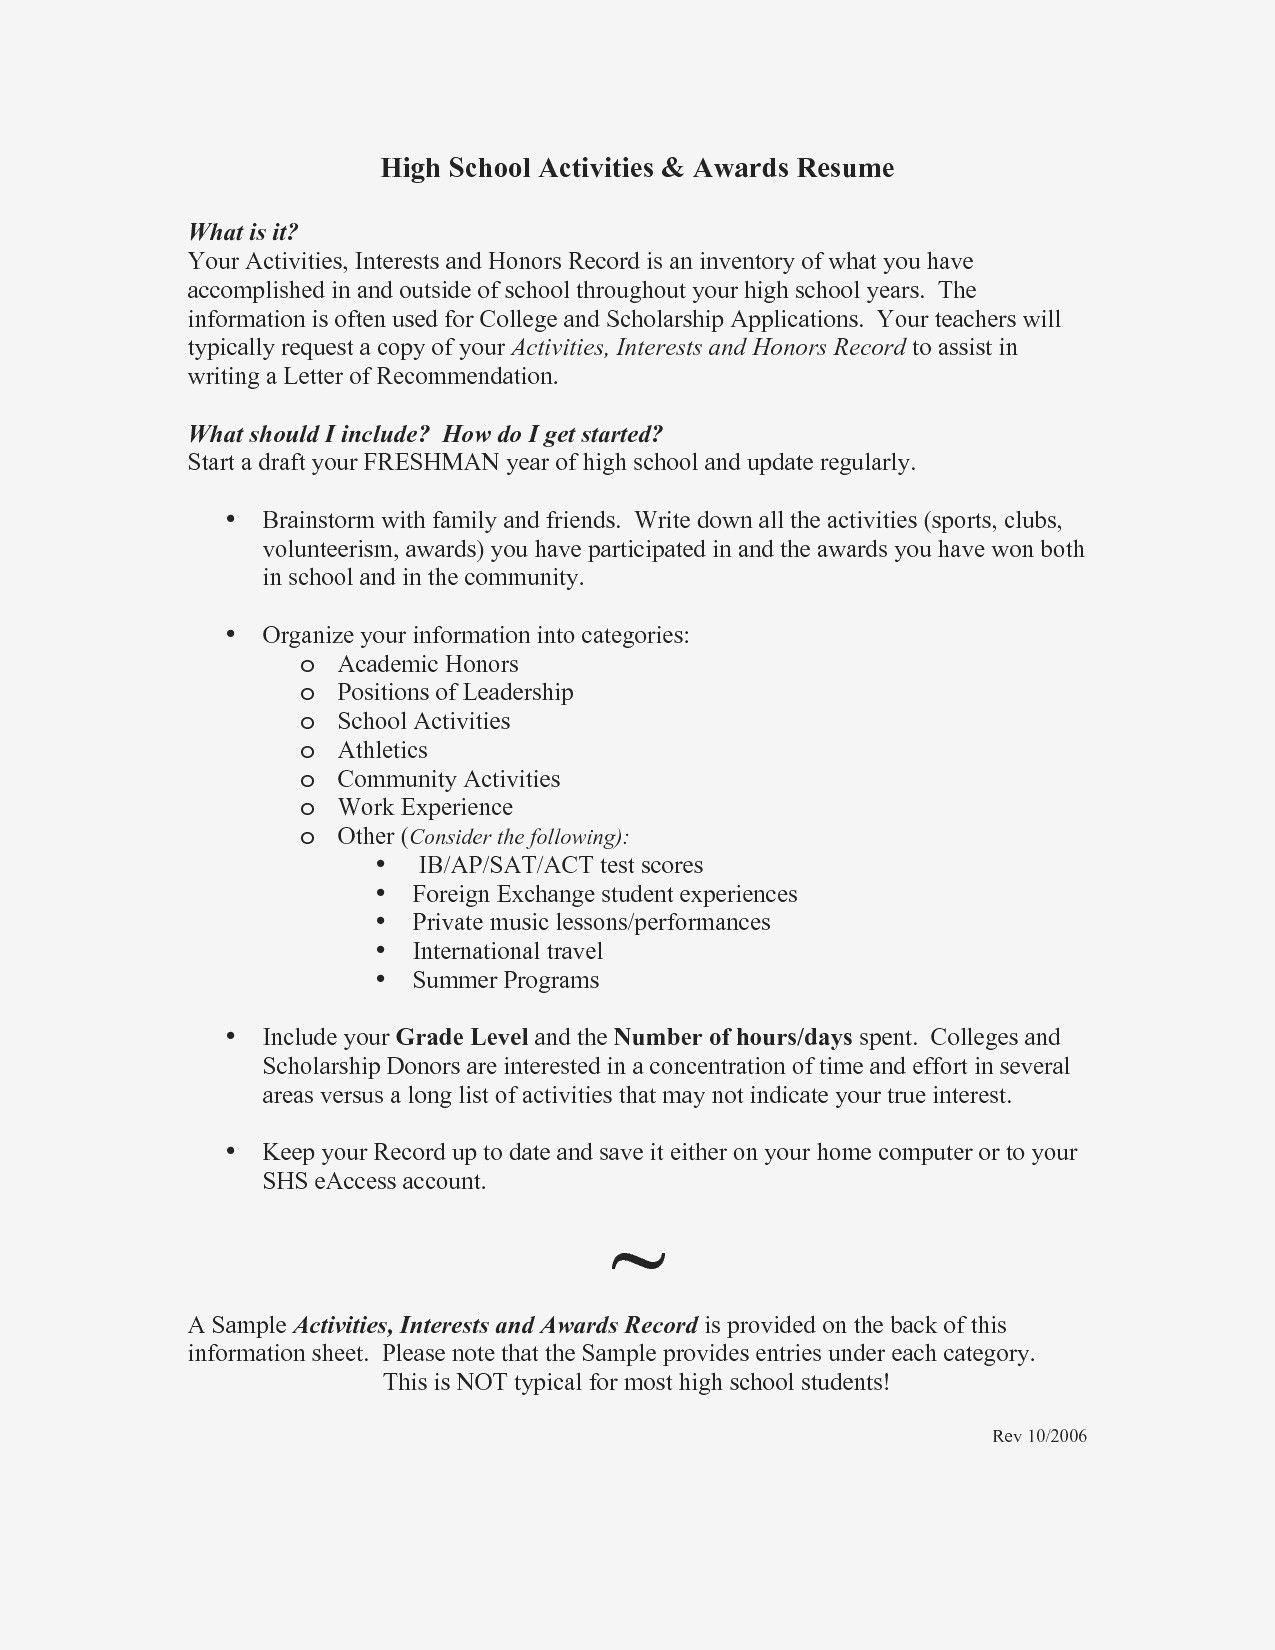 Customer services manager resume template